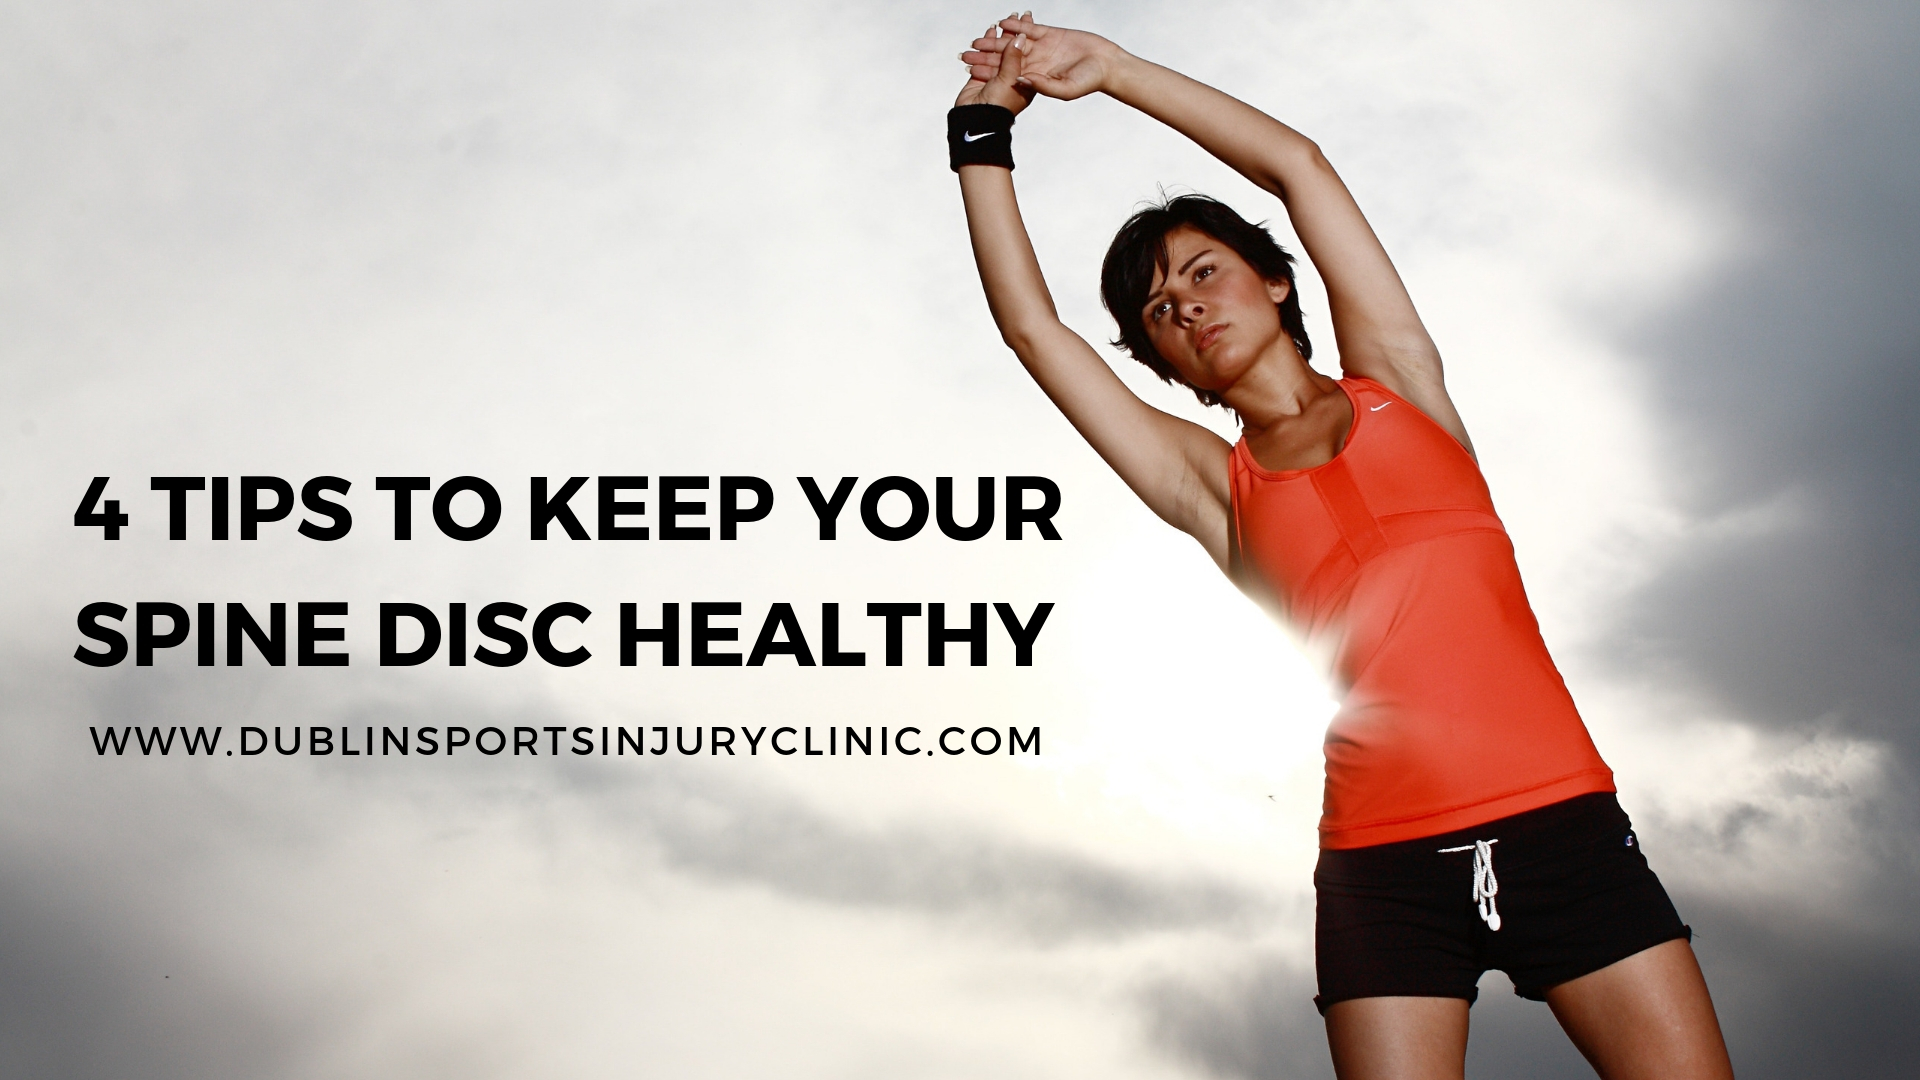 4 Tips to keep your spine disc healthy